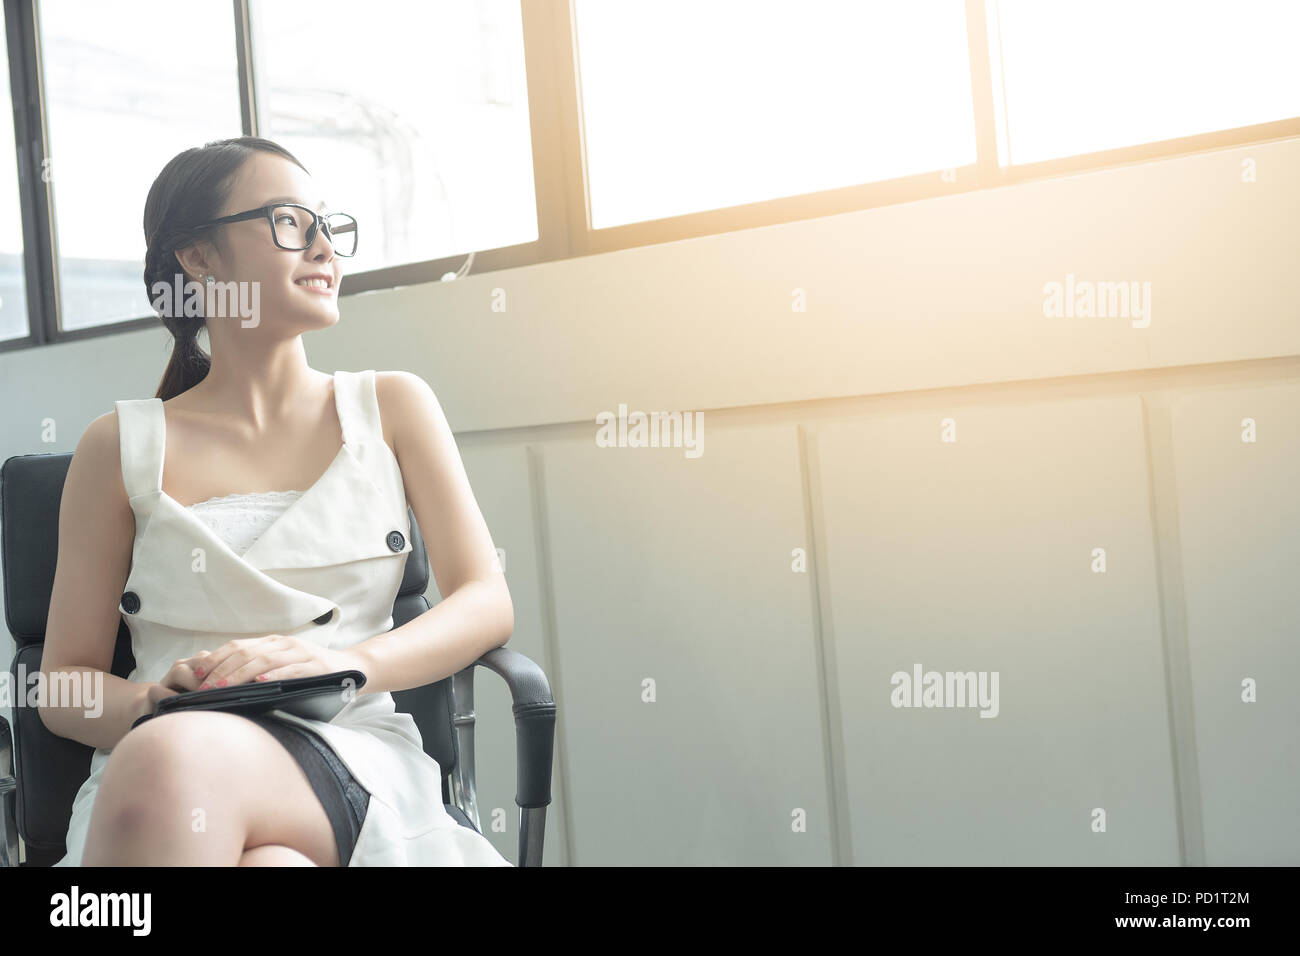 Young business woman in white dress who is candidate sitting wait for interview while looking out of big window. - Stock Image